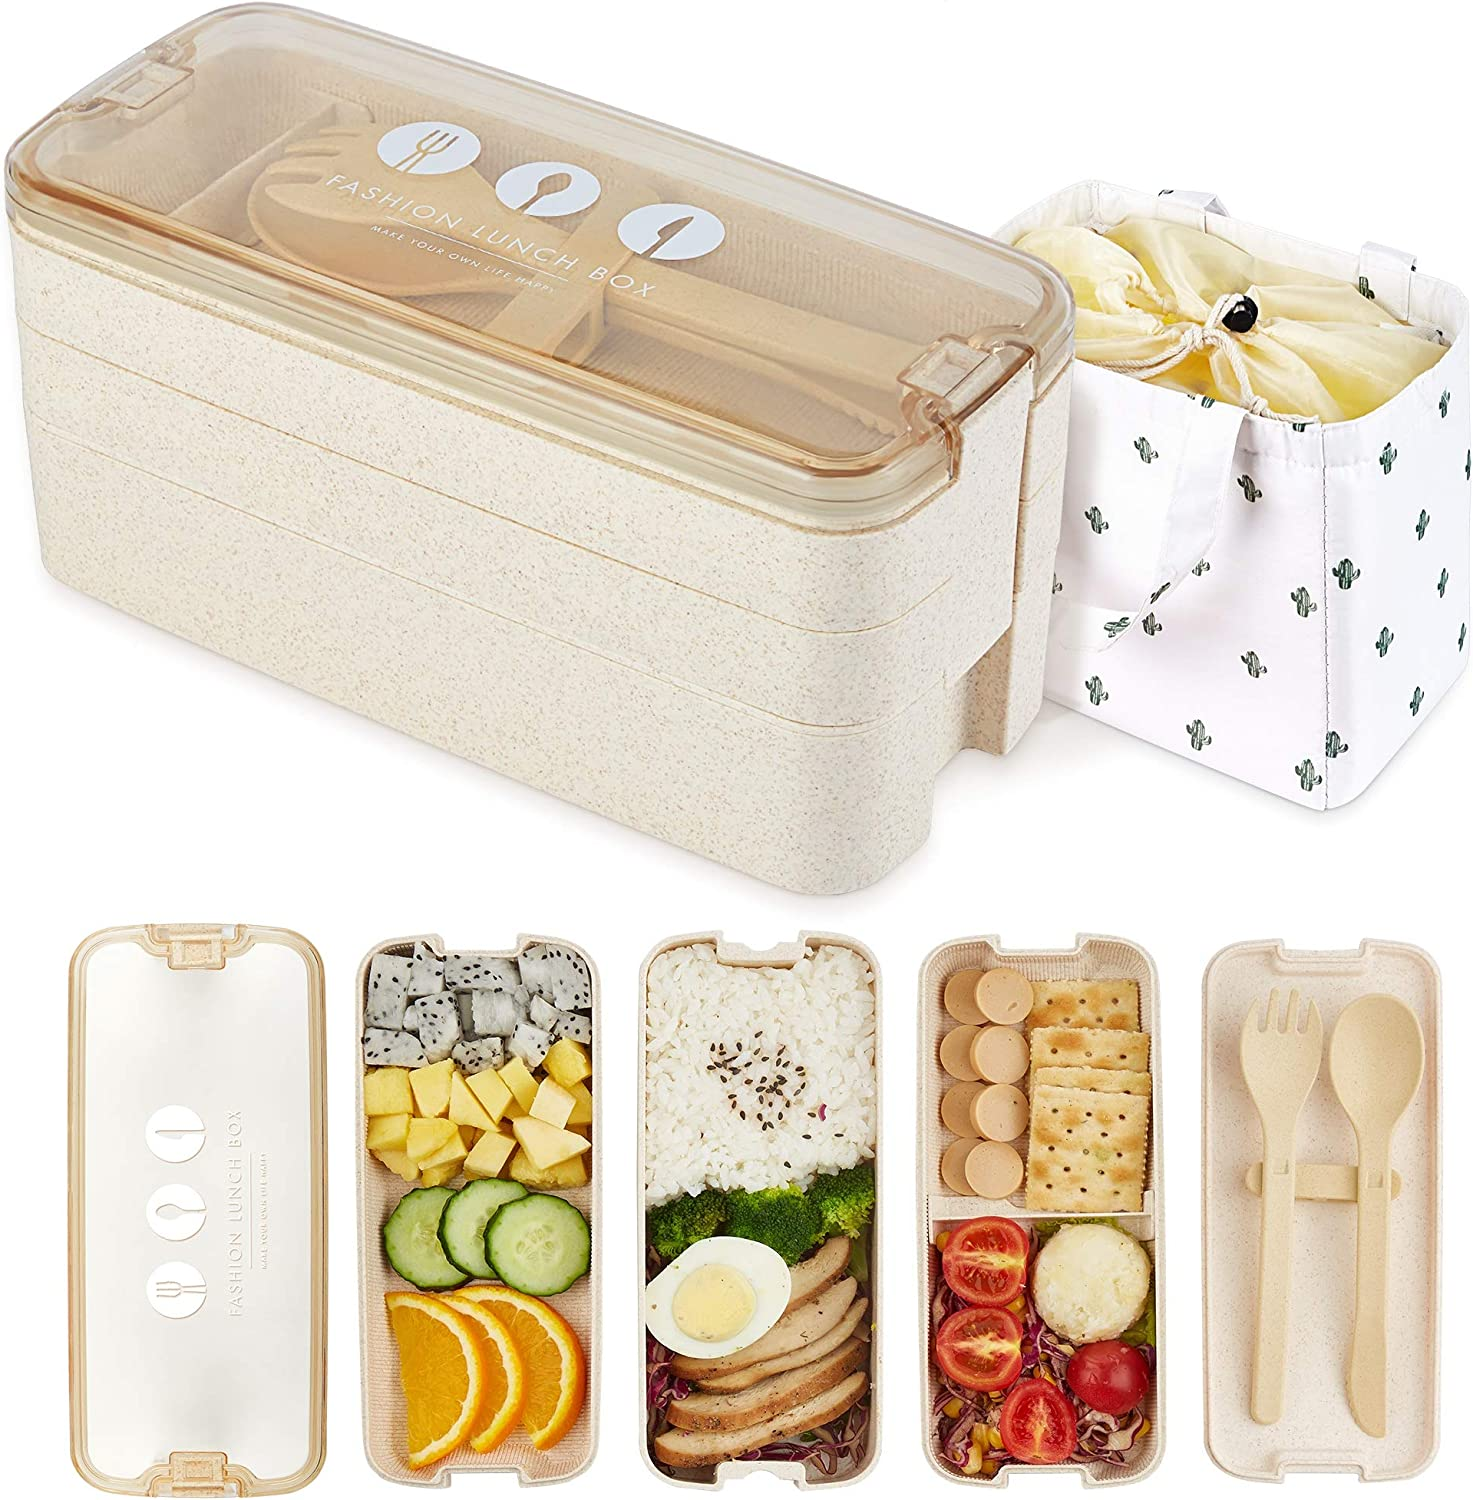 AZAWA Bento Lunch Box 1100ml/38oz, 3-Layer Bento Box with Spoon & Fork for Kids Adult & Office Worker, BPA-Free Wheat Fiber Lunch Box Leak-Proof Food Containers with Bonus Lunch Bag (Beige)